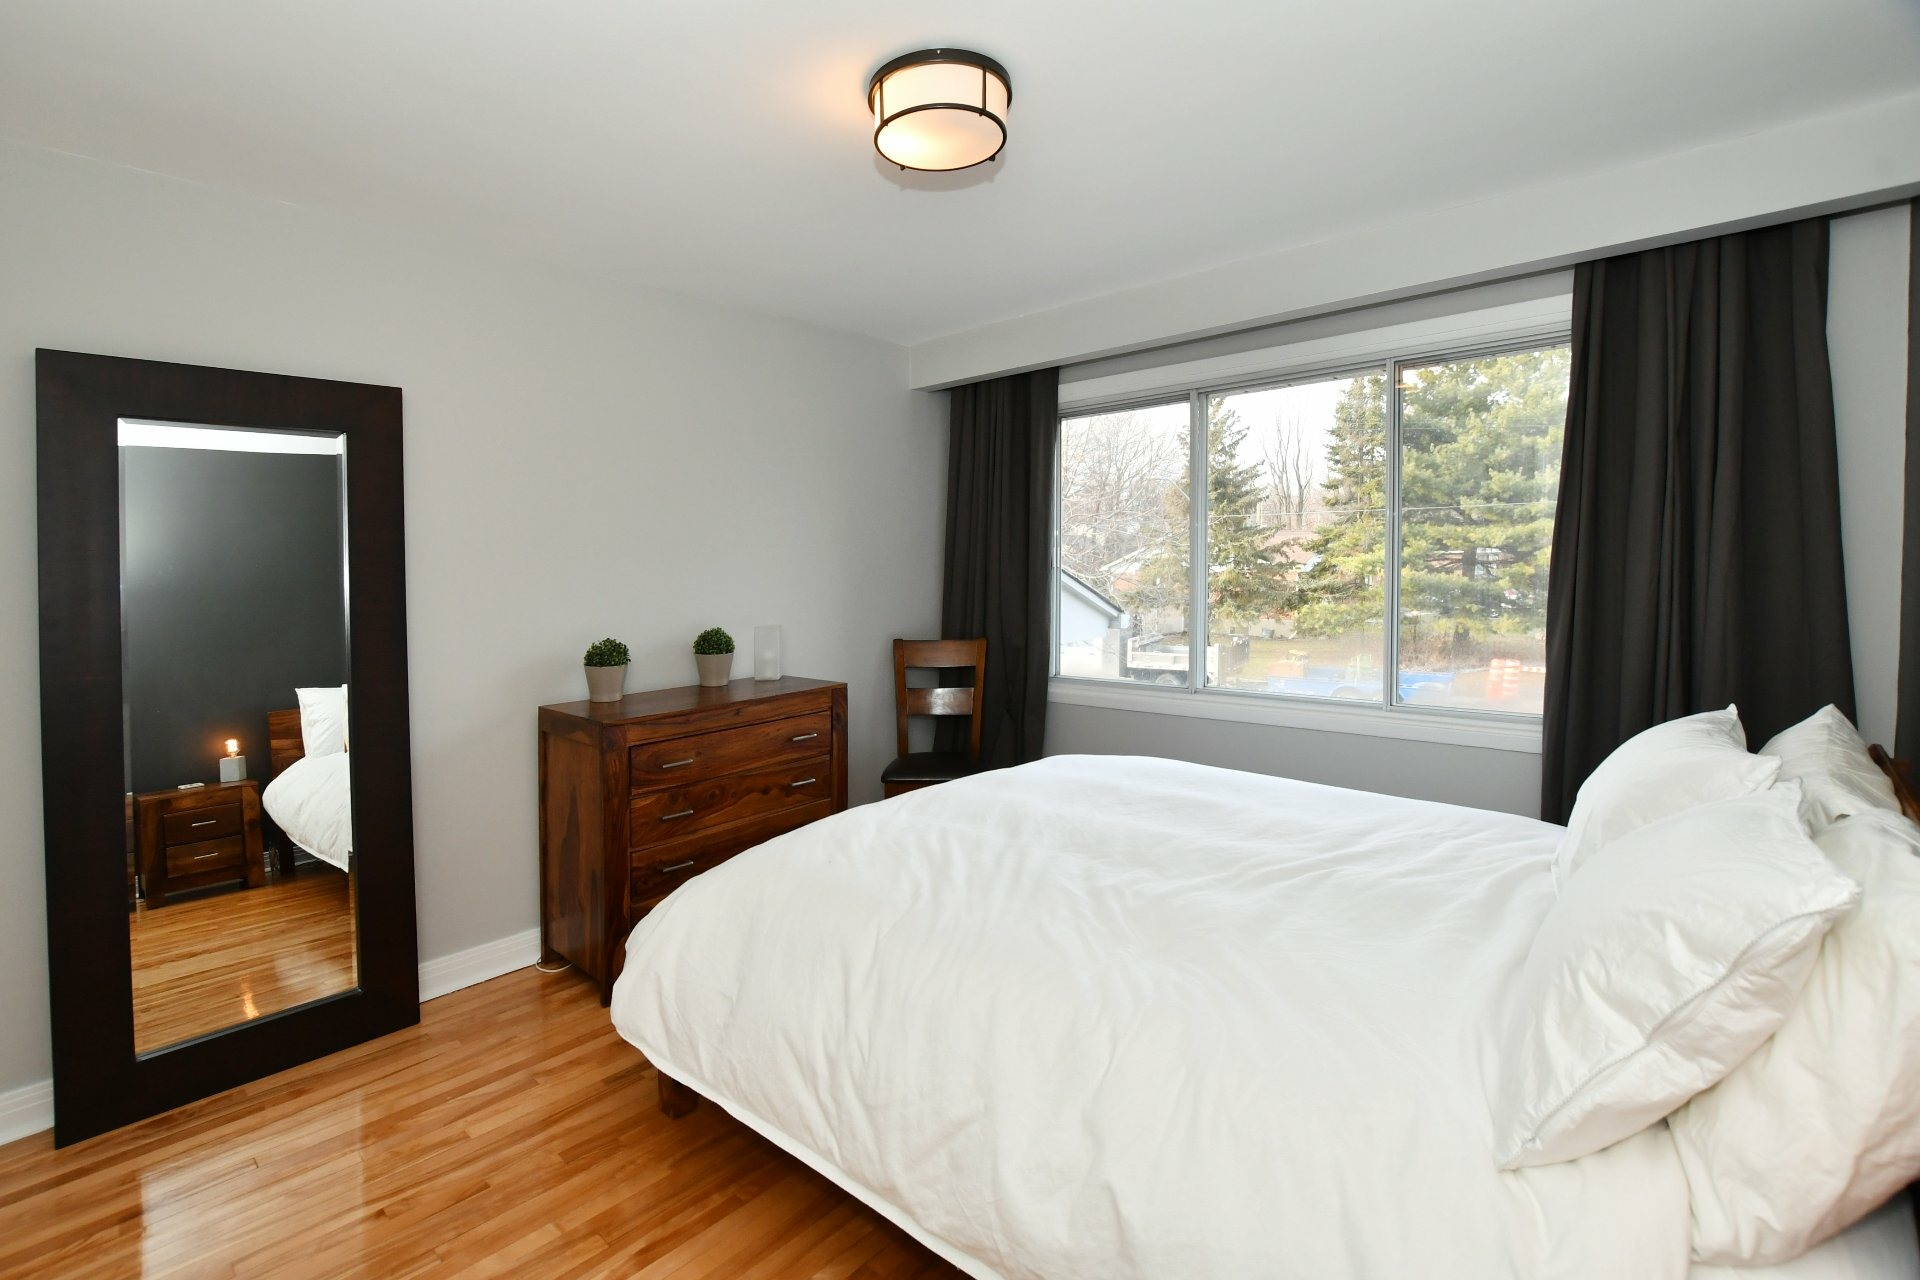 image 10 - House For sale Pointe-Claire - 10 rooms